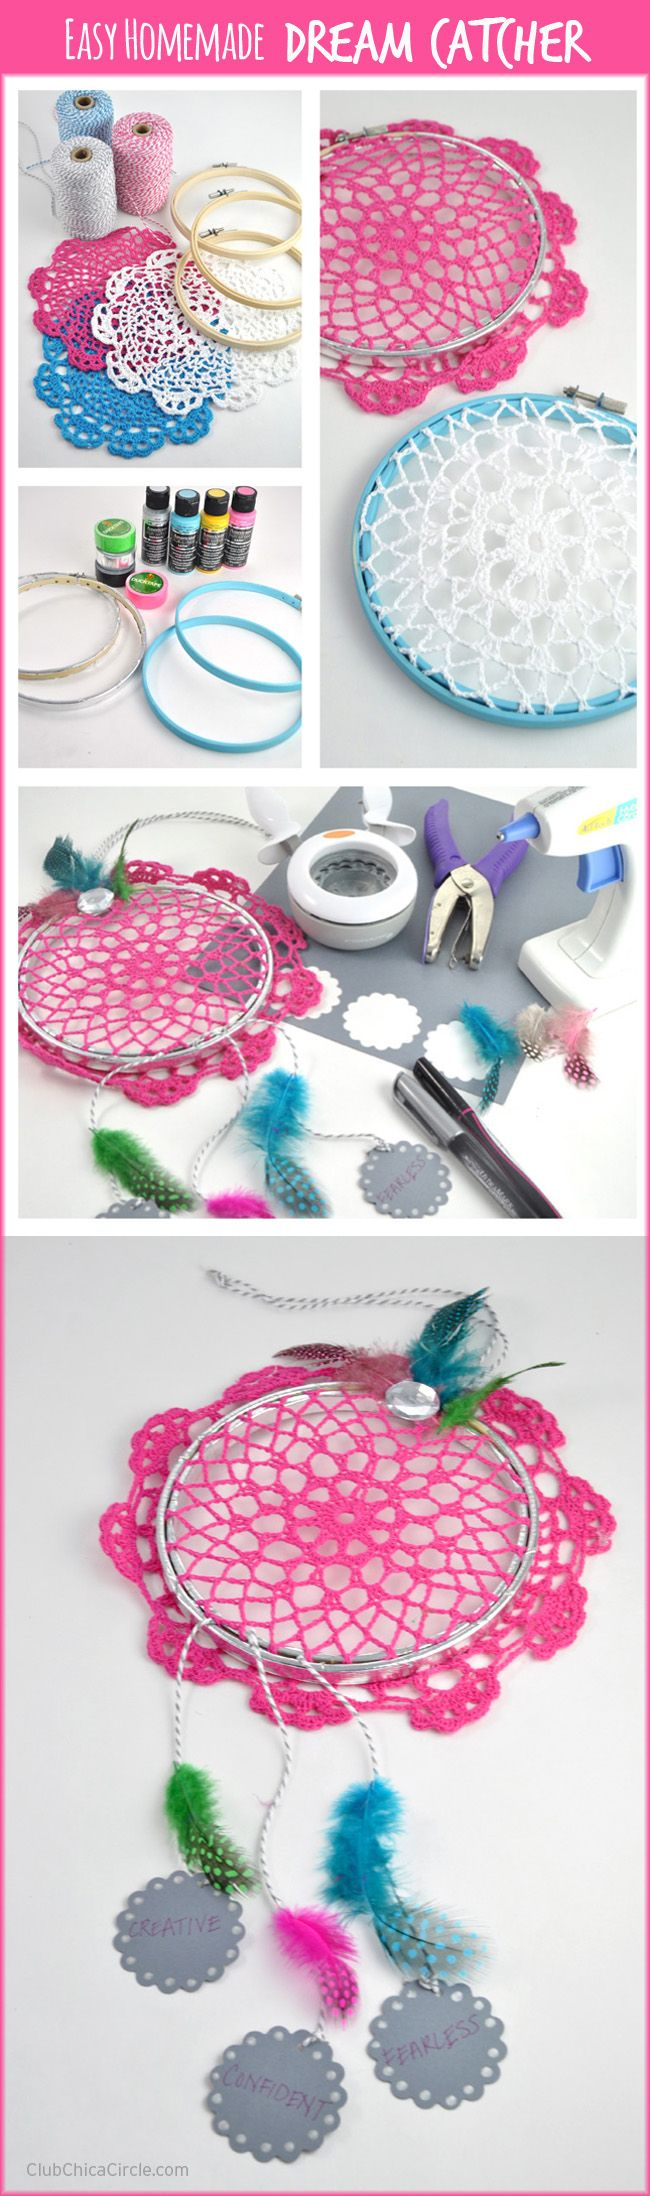 Easy Homemade Dream Catcher DIY with Embroidery Hoops and Doilies